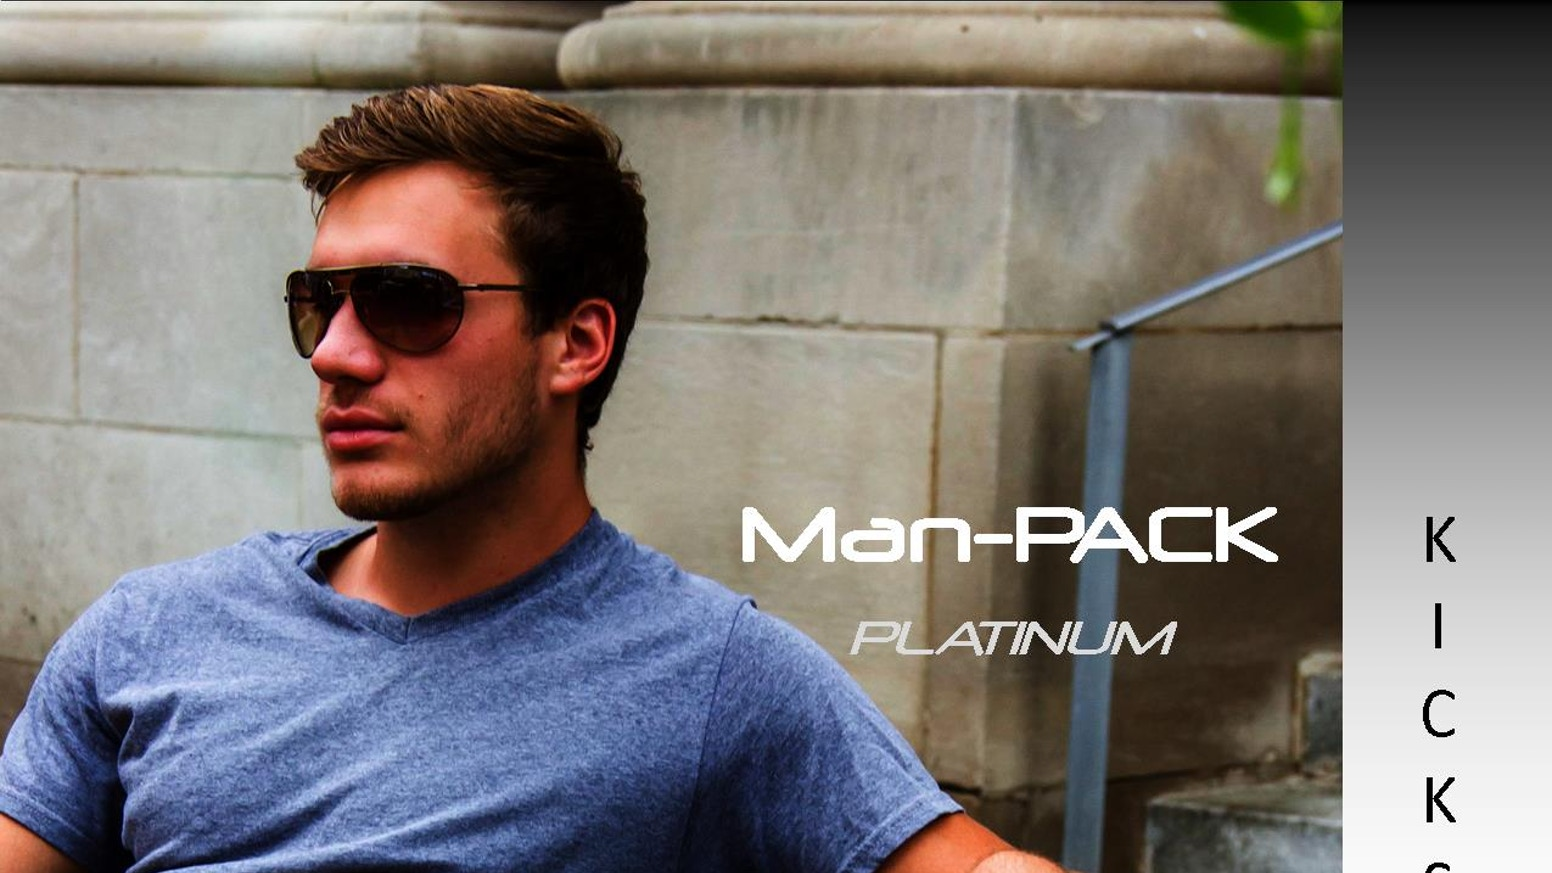 Find more at Man-PACK.com